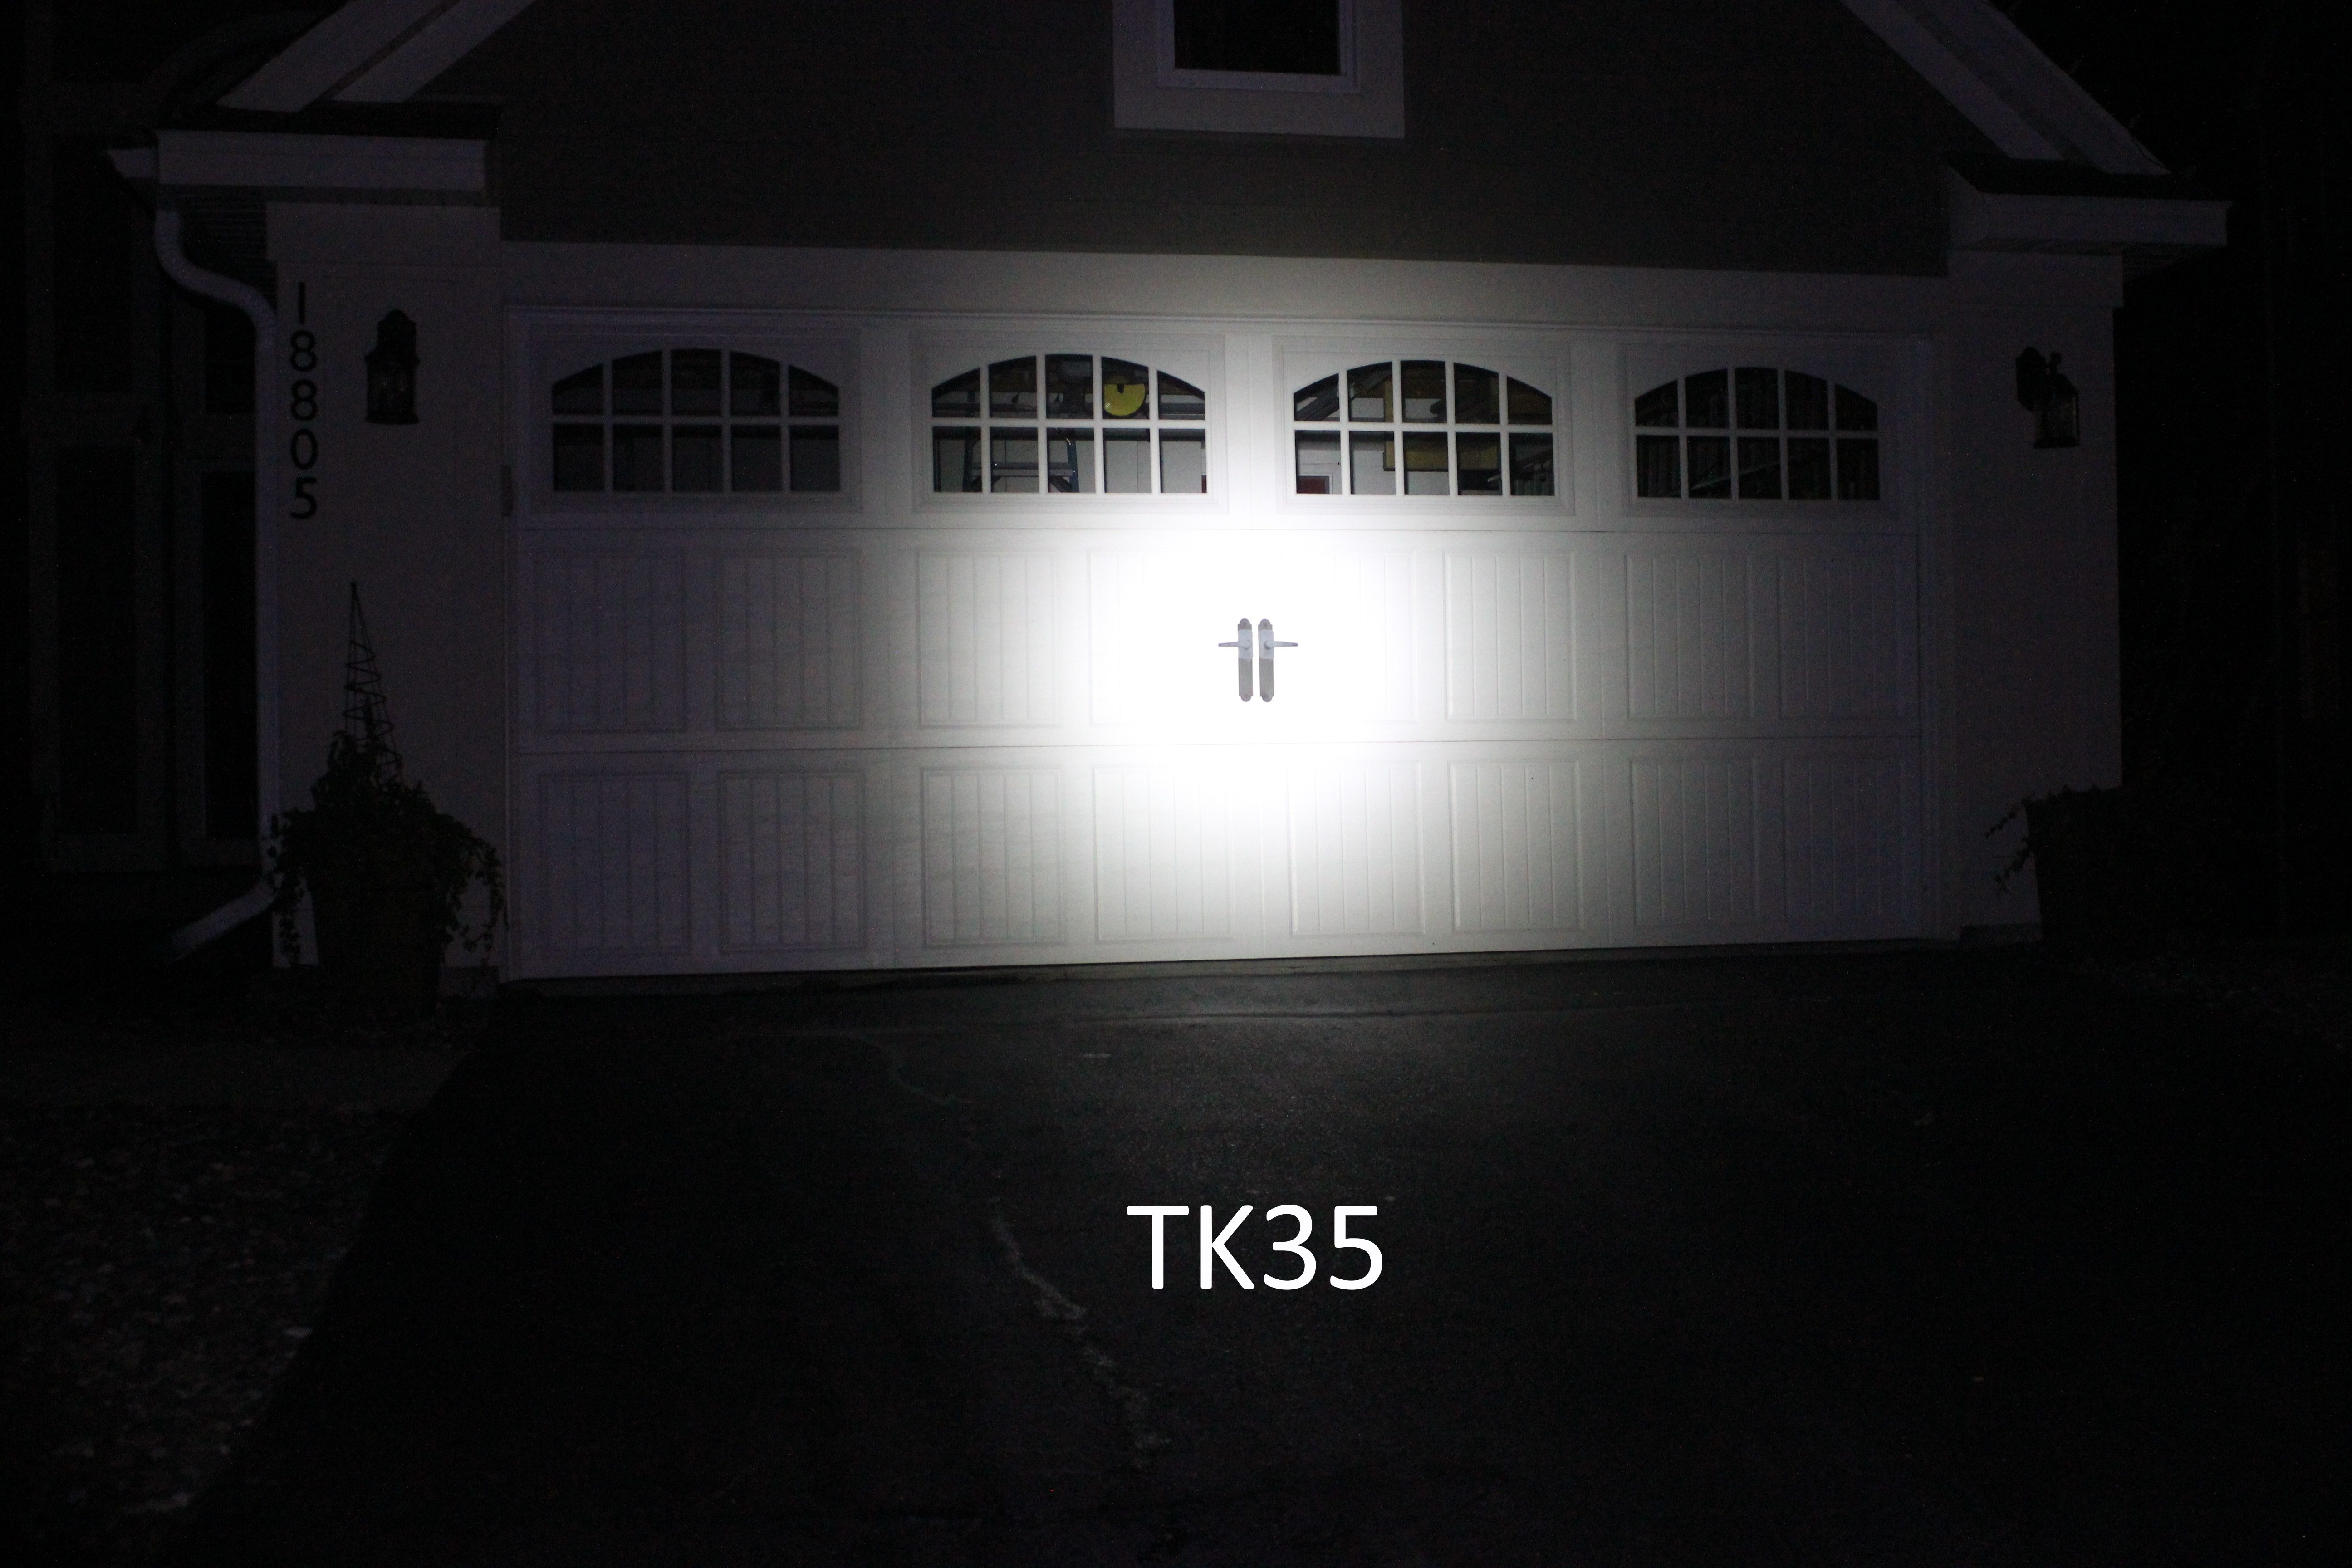 For High Power Settings I Compared Images On The Highest Setting Between TK35 And TK35UE First